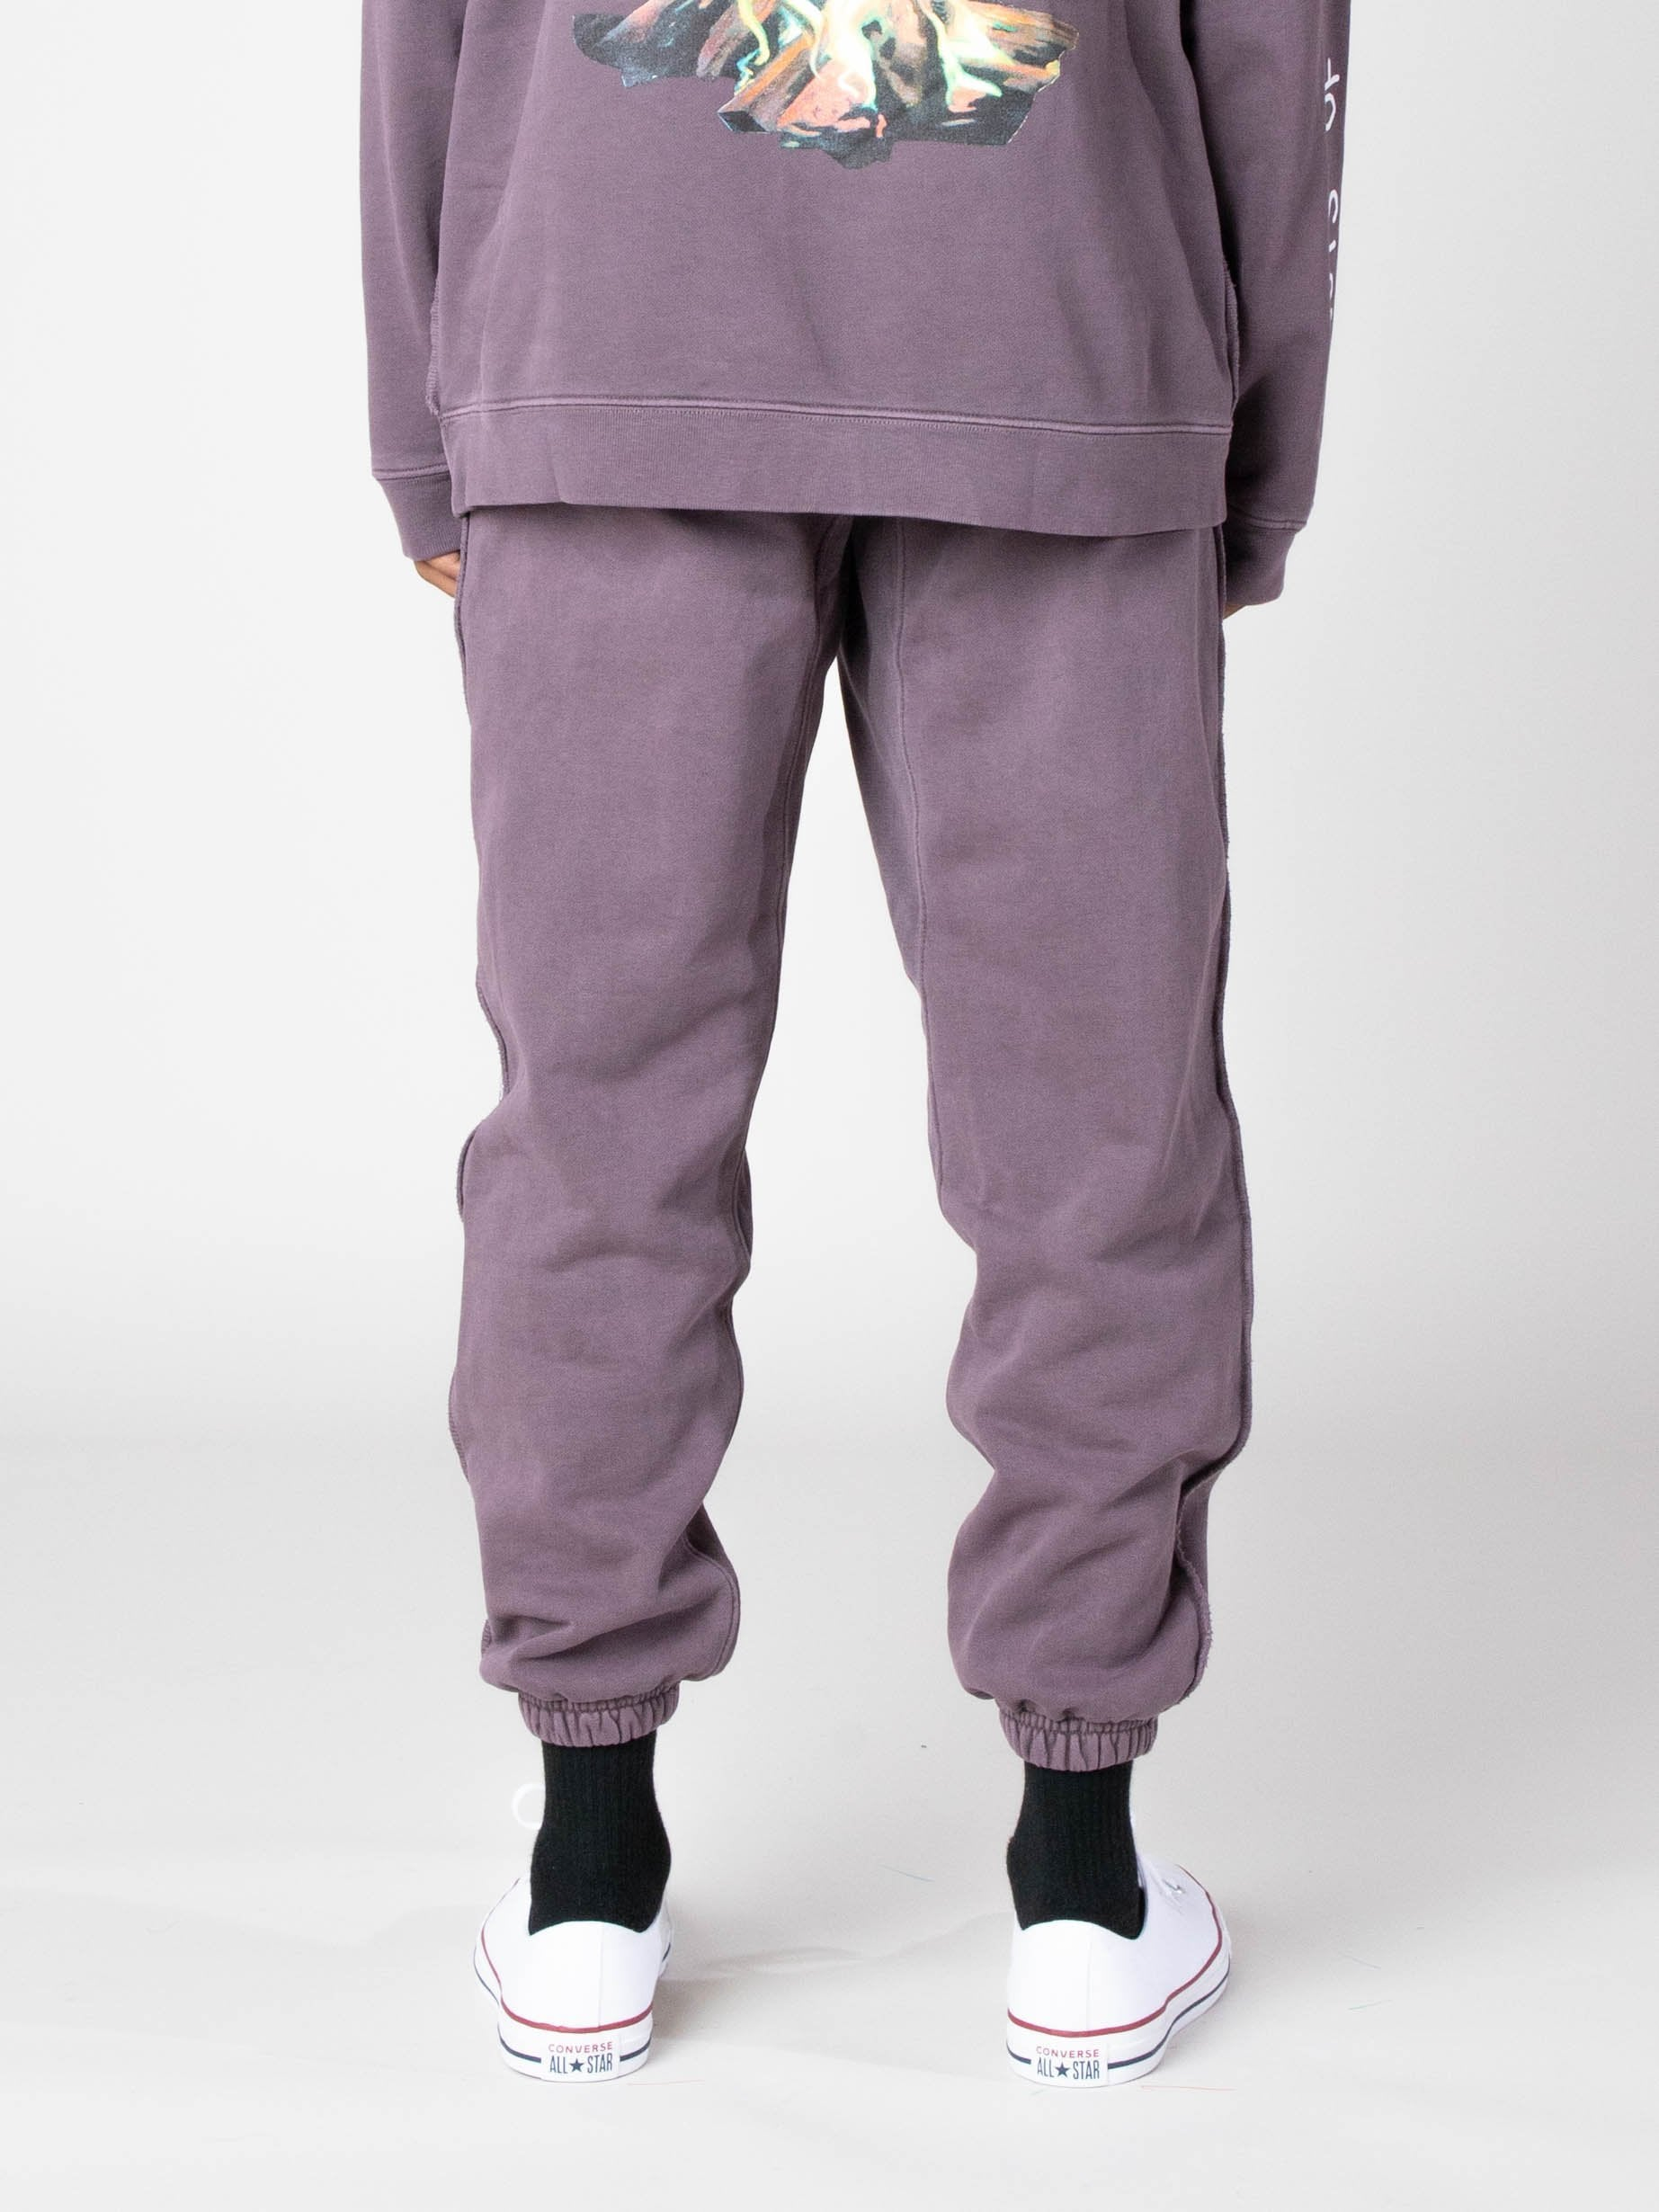 Purple Matt McCormick Sweatpant 6